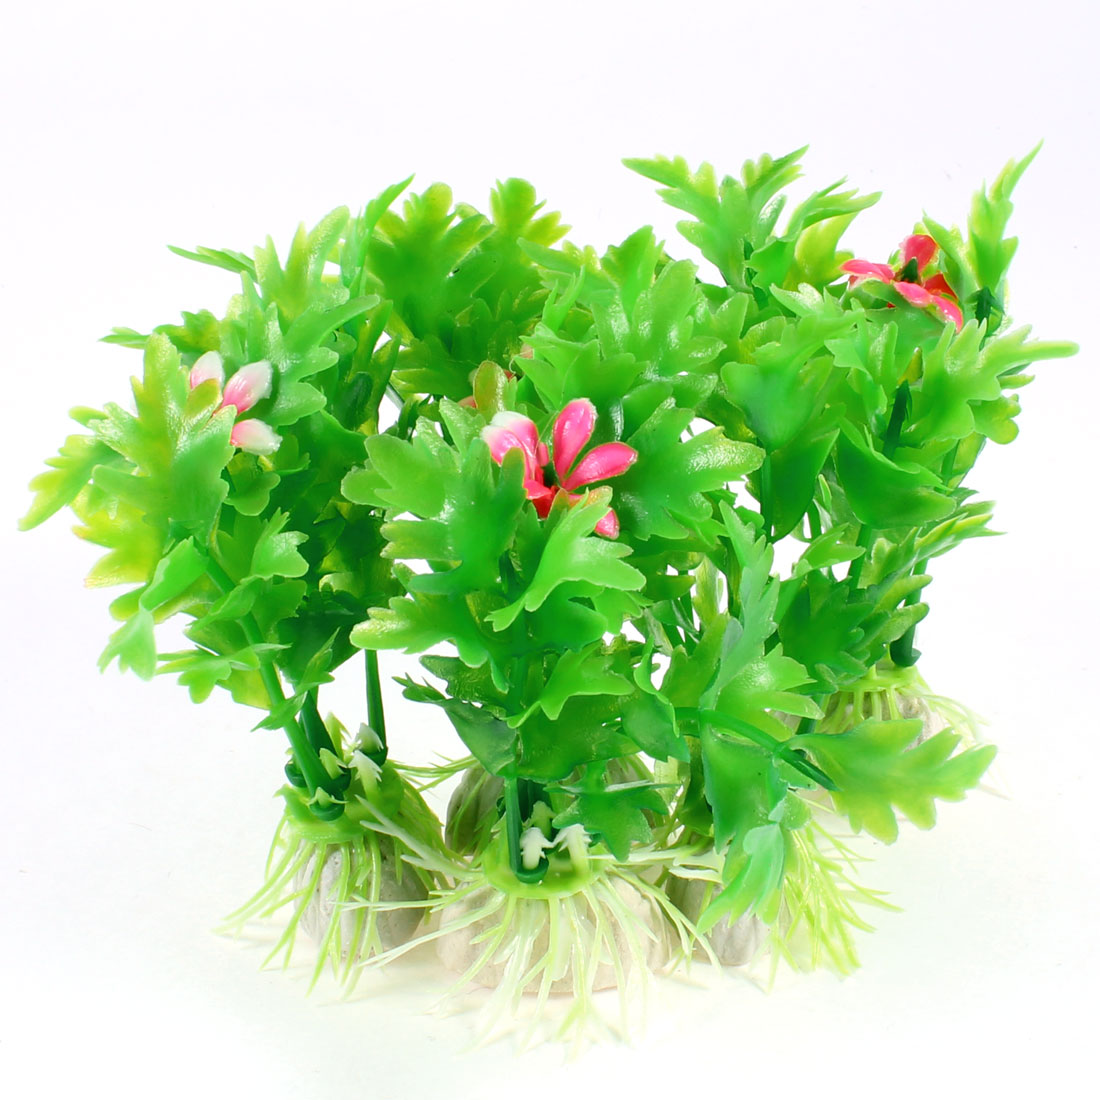 5 Pcs Plastic Water Grass Green Leaves Red Flower for Fish Tank Aquarium